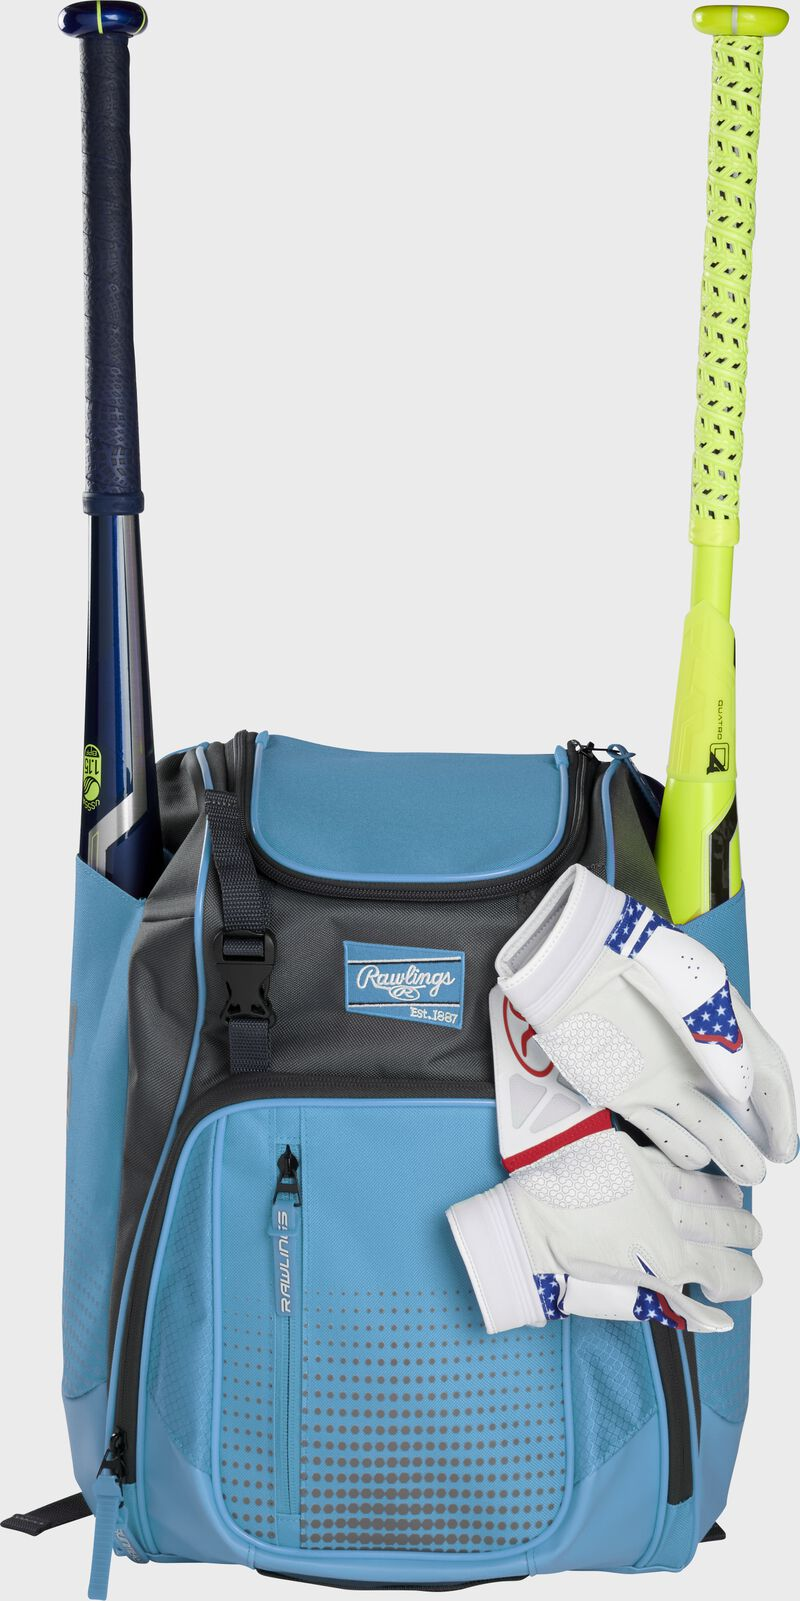 A Columbia blue Franchise backpack with two bats in the sides and batting gloves on the front Velcro strap - SKU: FRANBP-CB